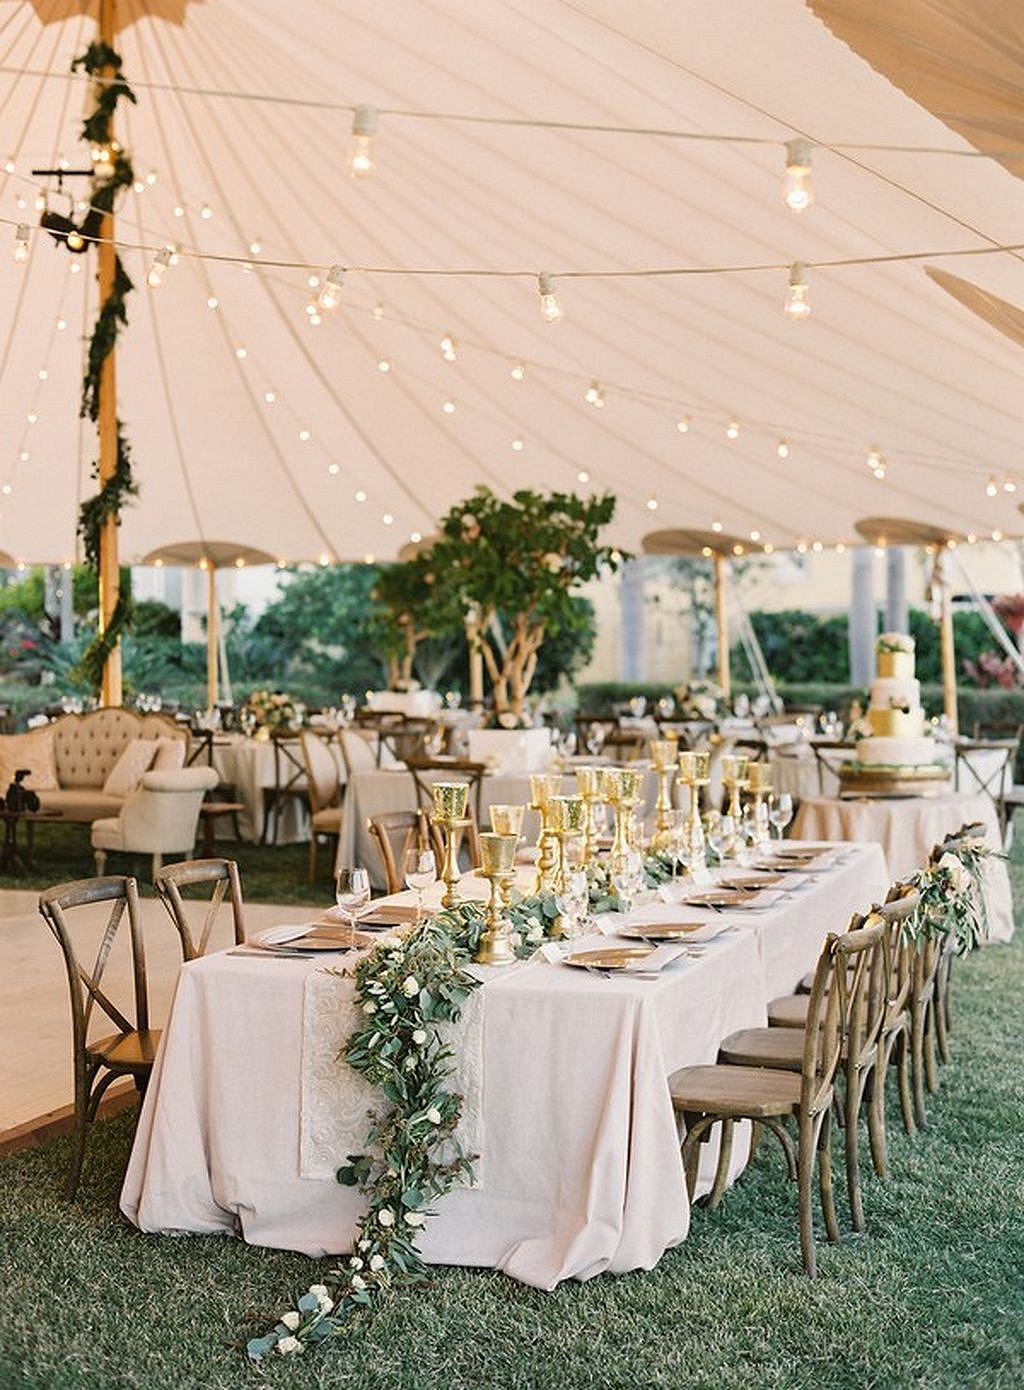 50 Romantic Backyard Outdoor Weddings Ideas 50